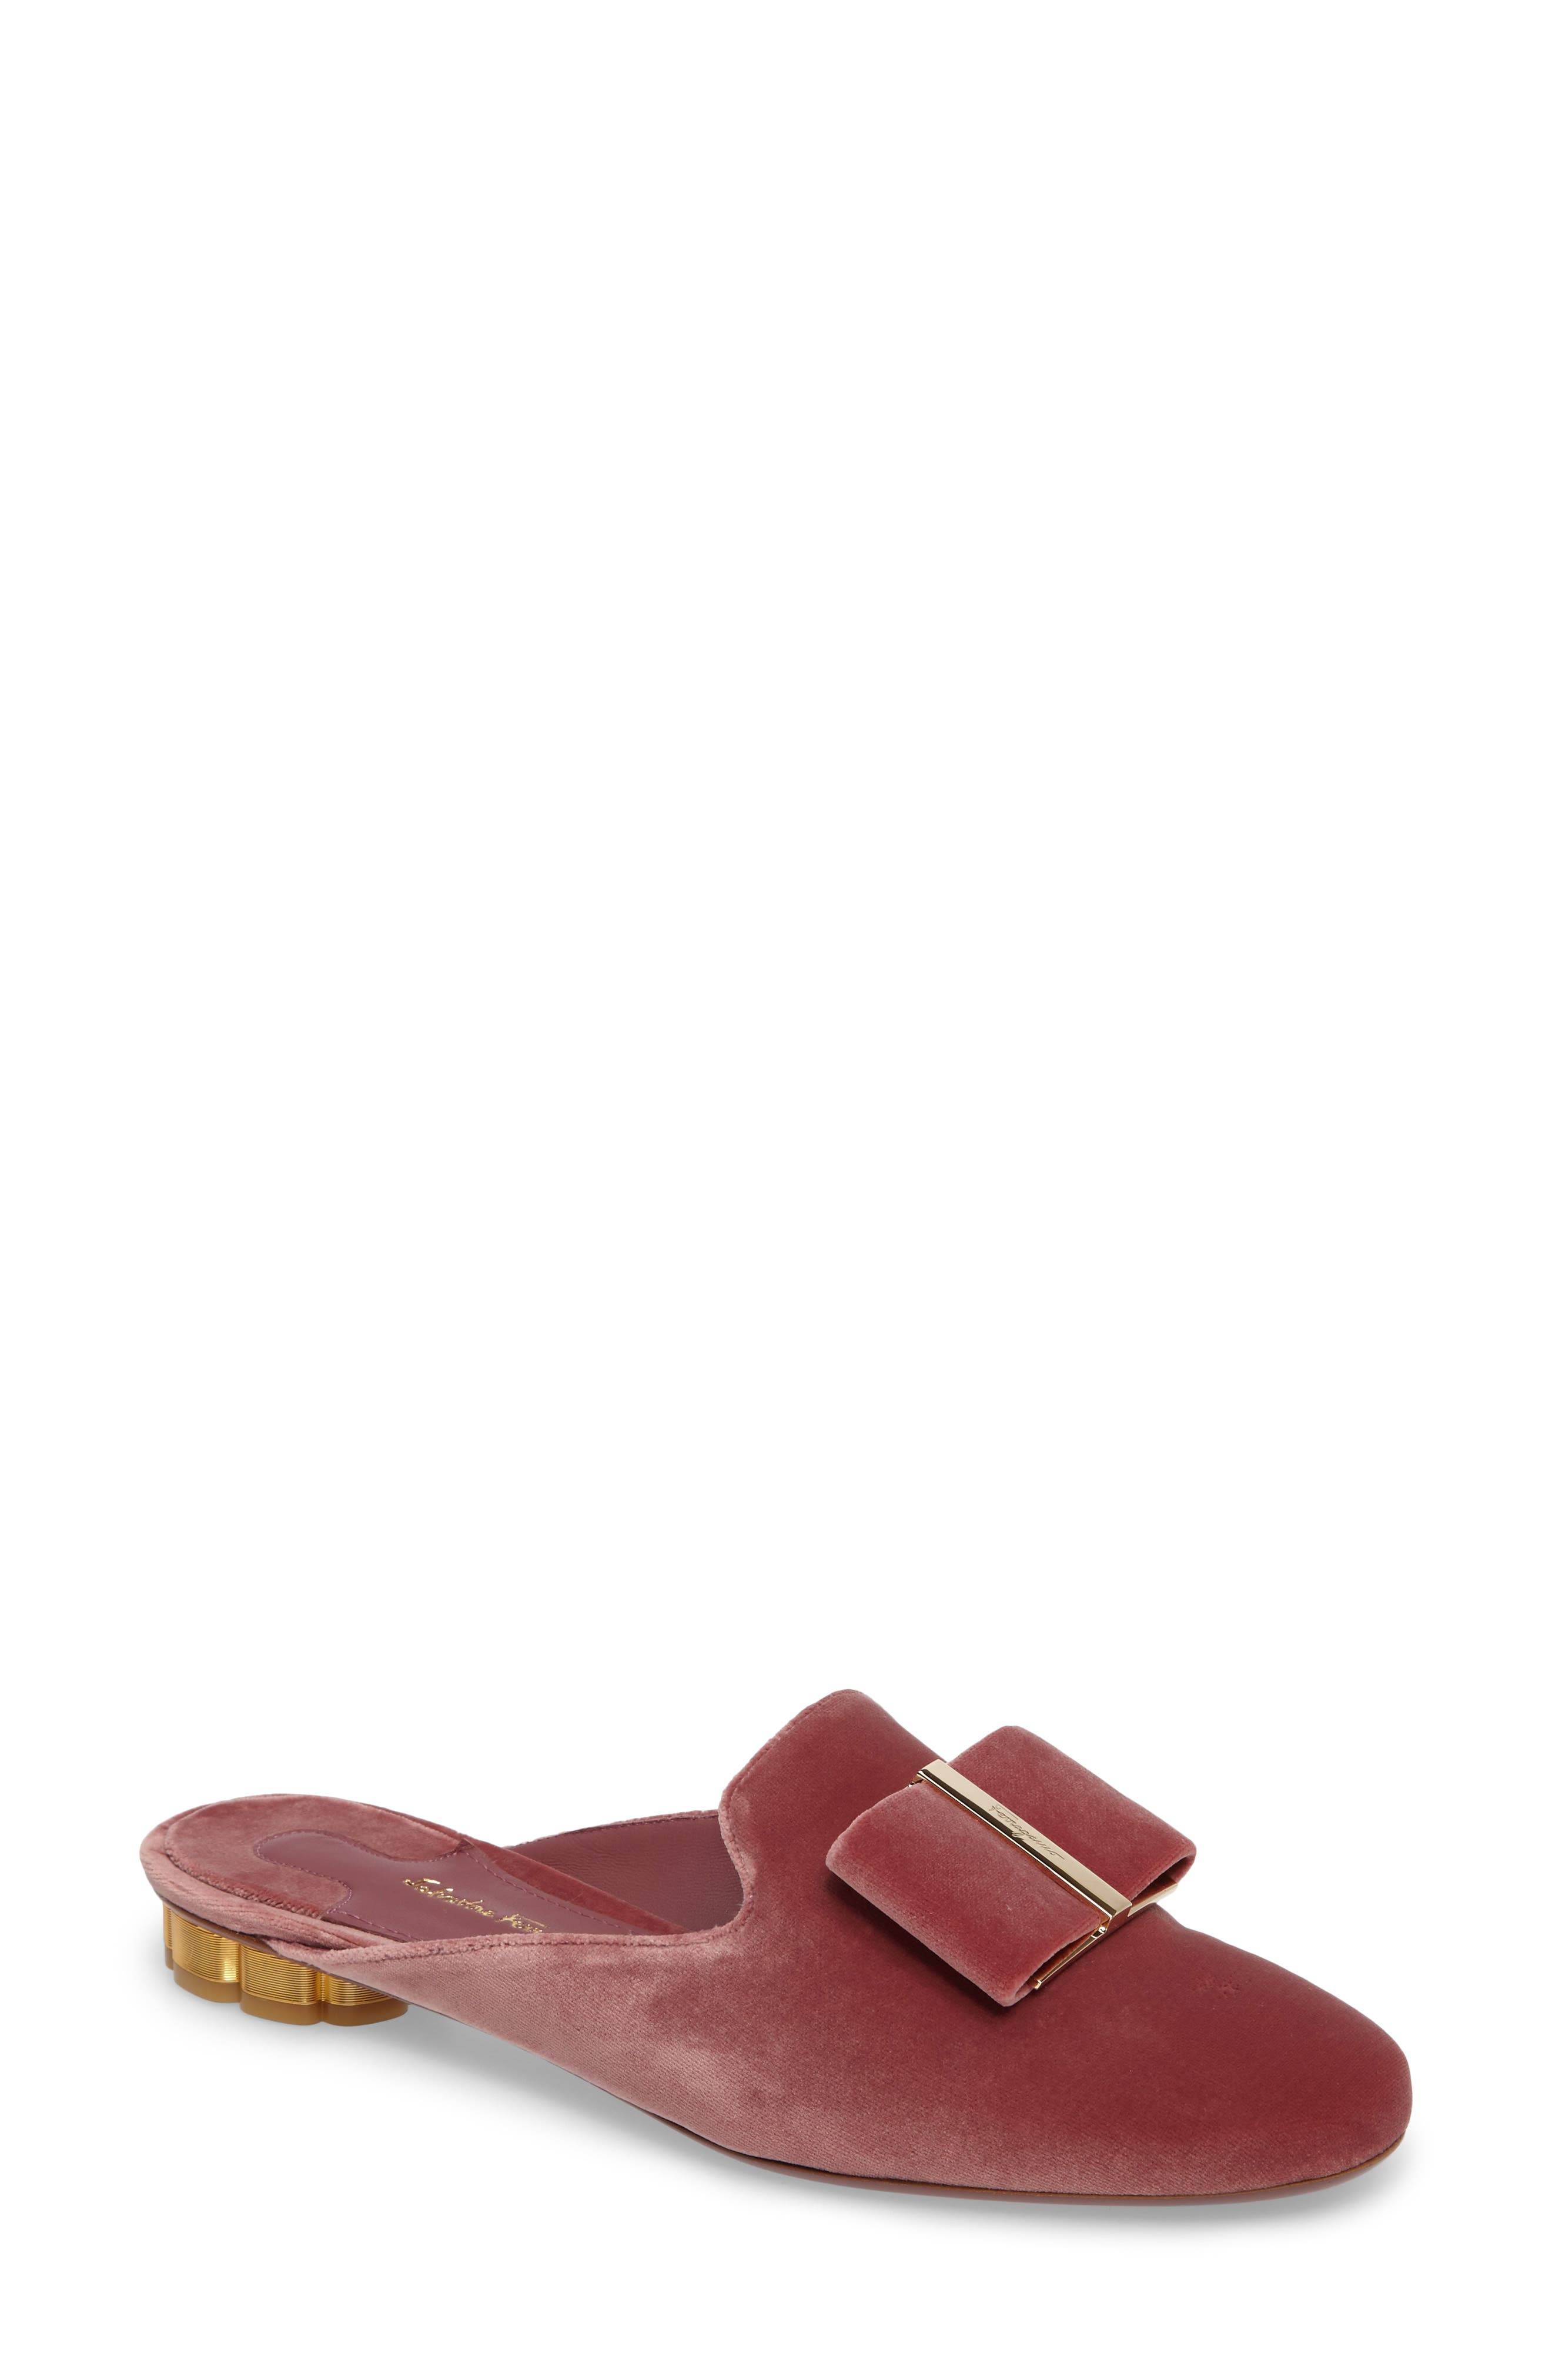 Alternate Image 1 Selected - Salvatore Ferragamo Backless Loafer Mule (Women)